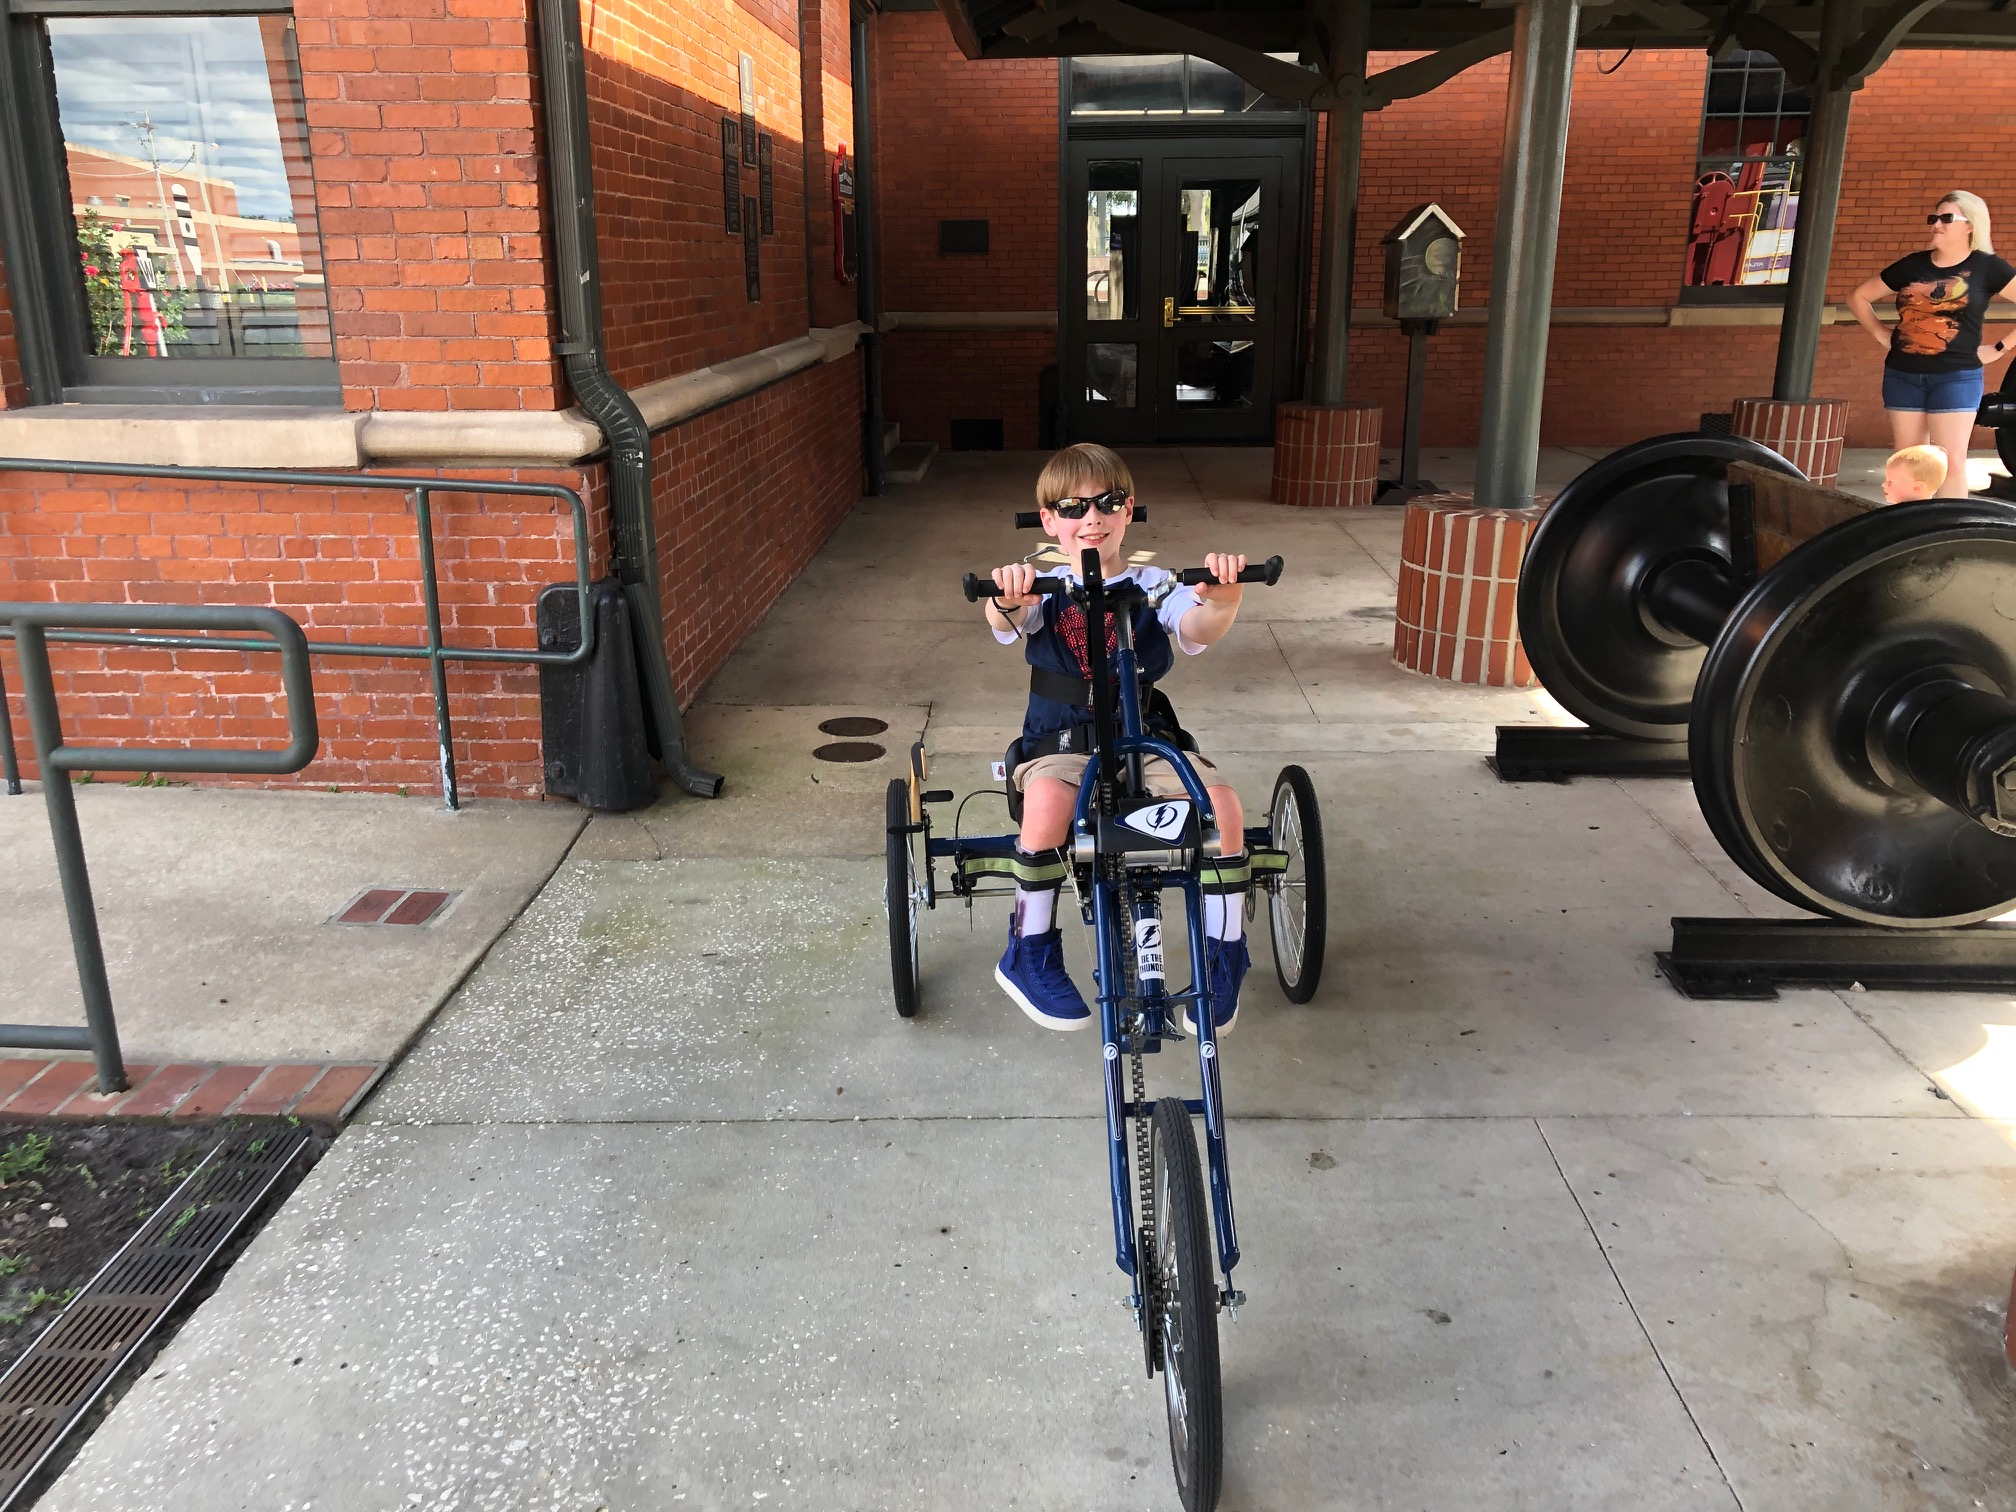 A 9-year-old boy wearing sunglasses riding a three-wheeled handcycle toward the camera.